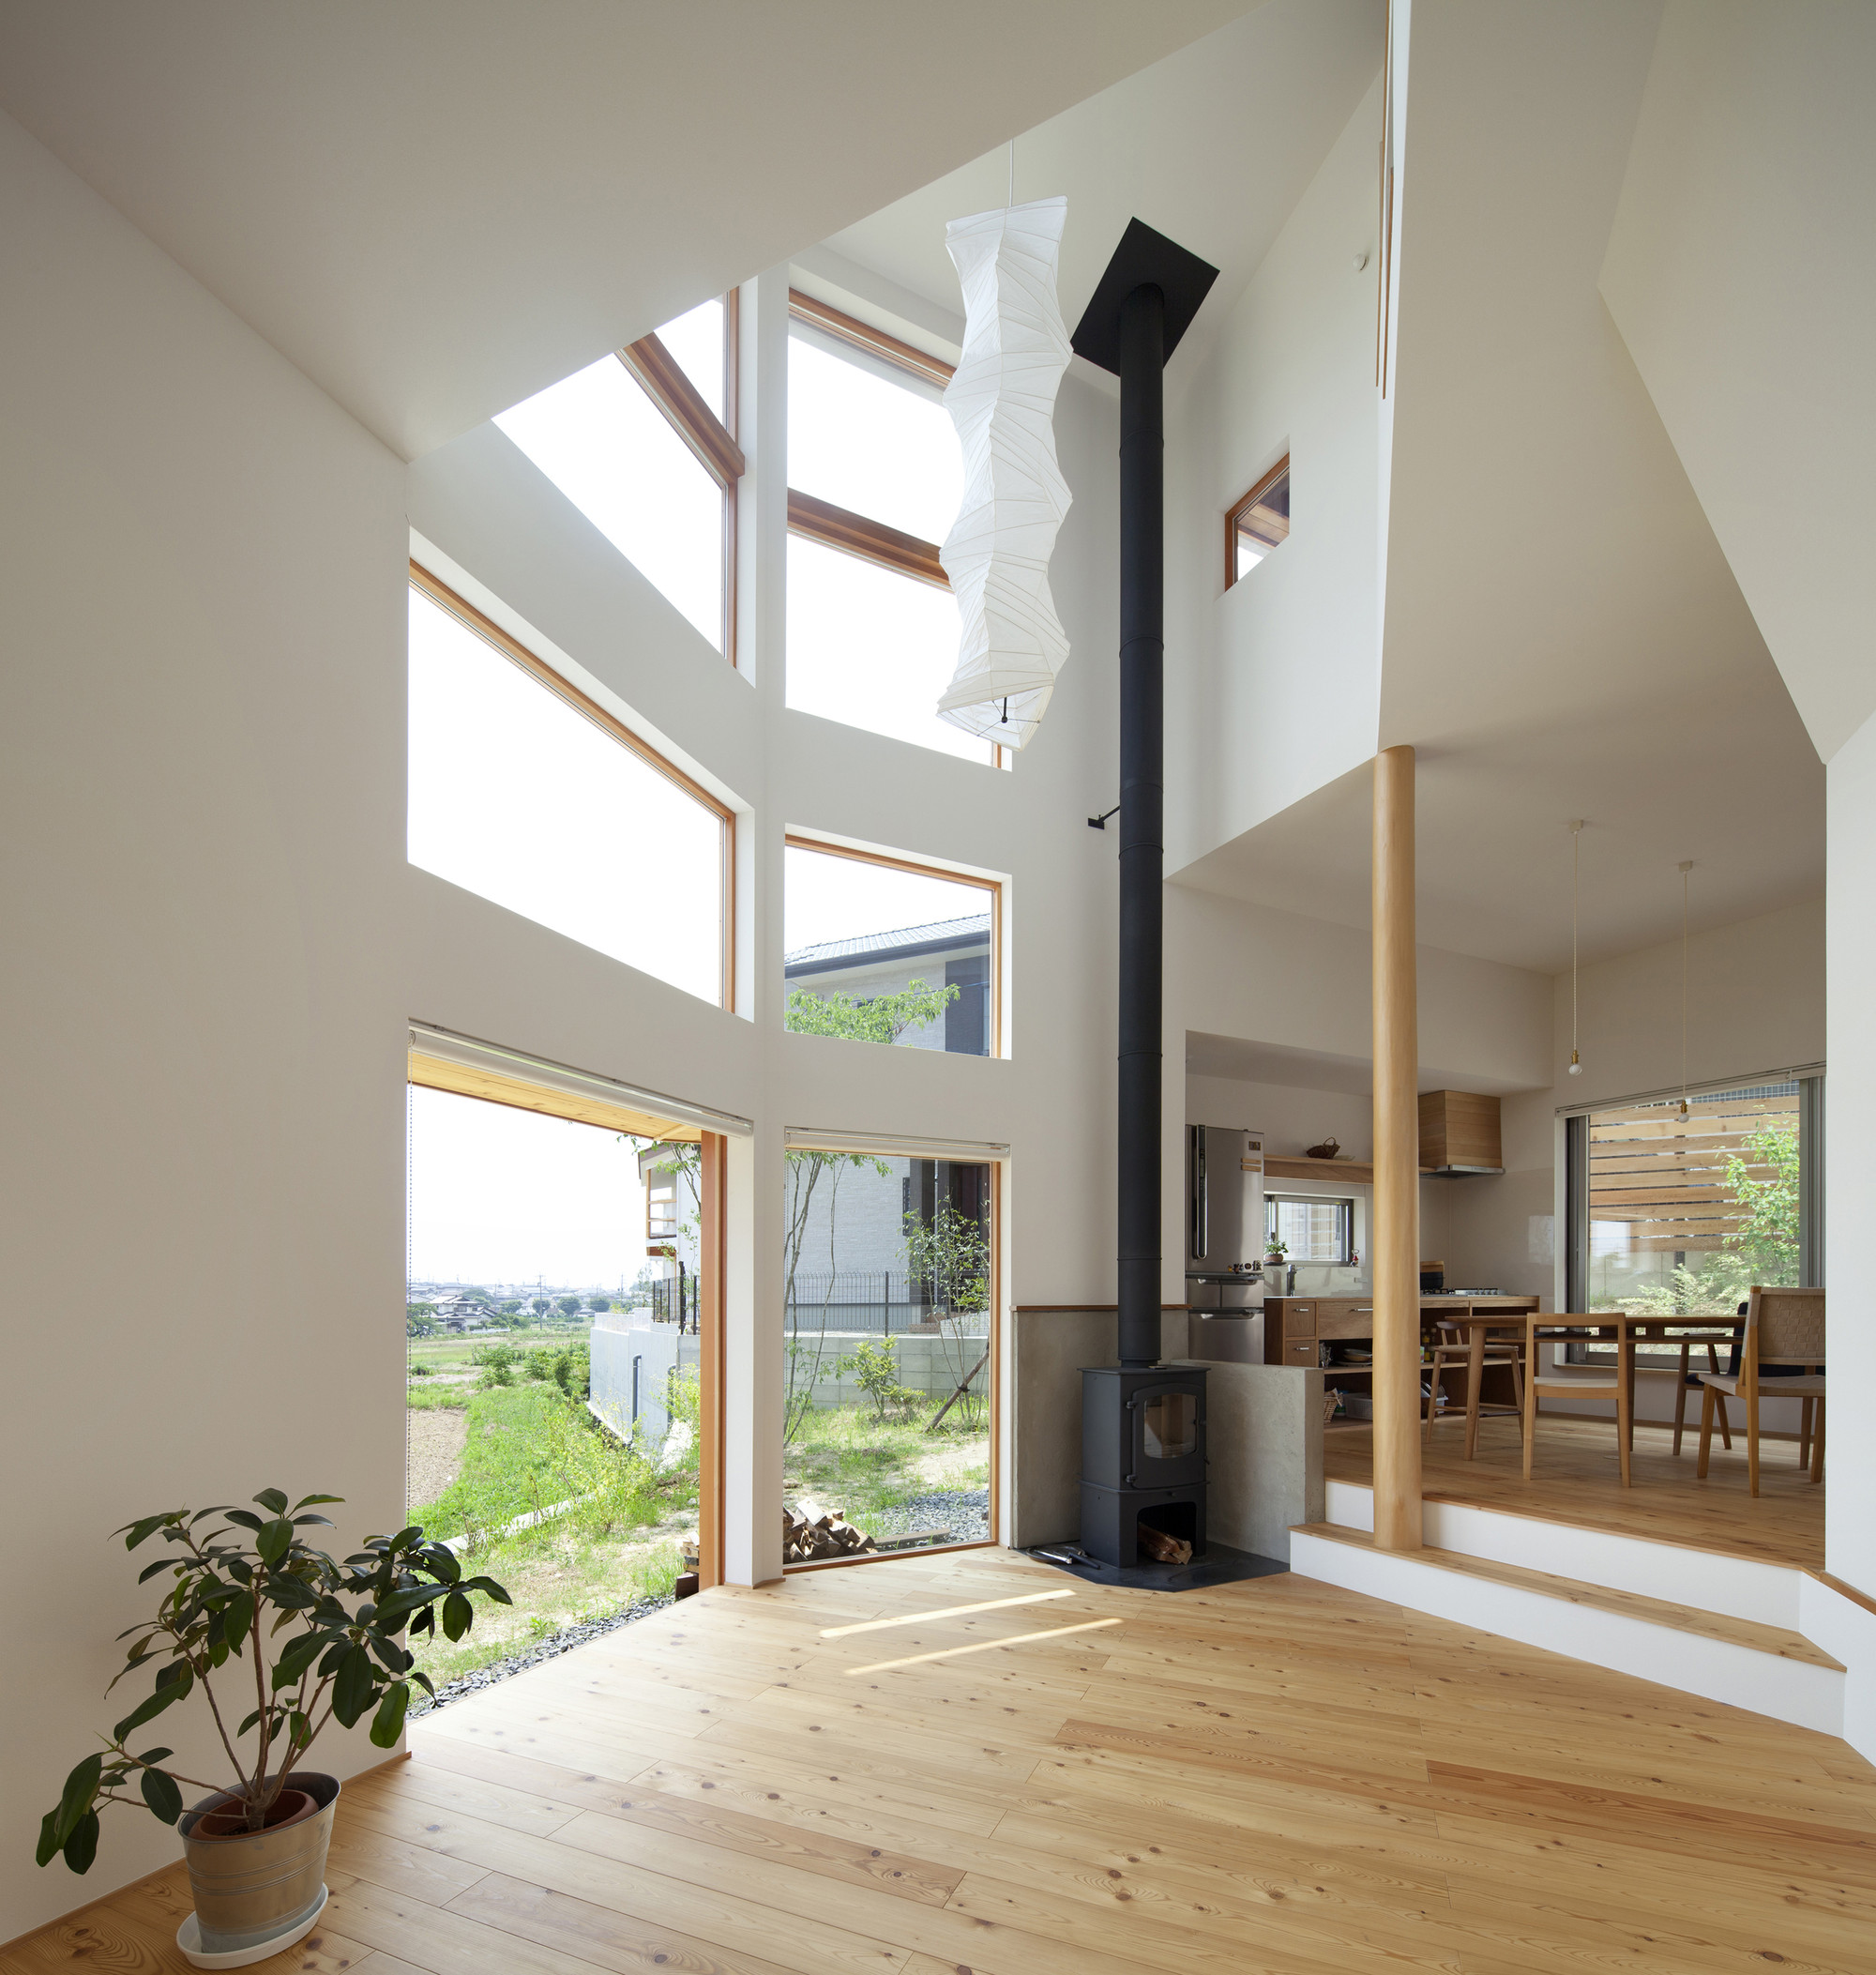 The Frontier House  / Mamiya Shinichi Design Studio, © Toshiyuki Yano